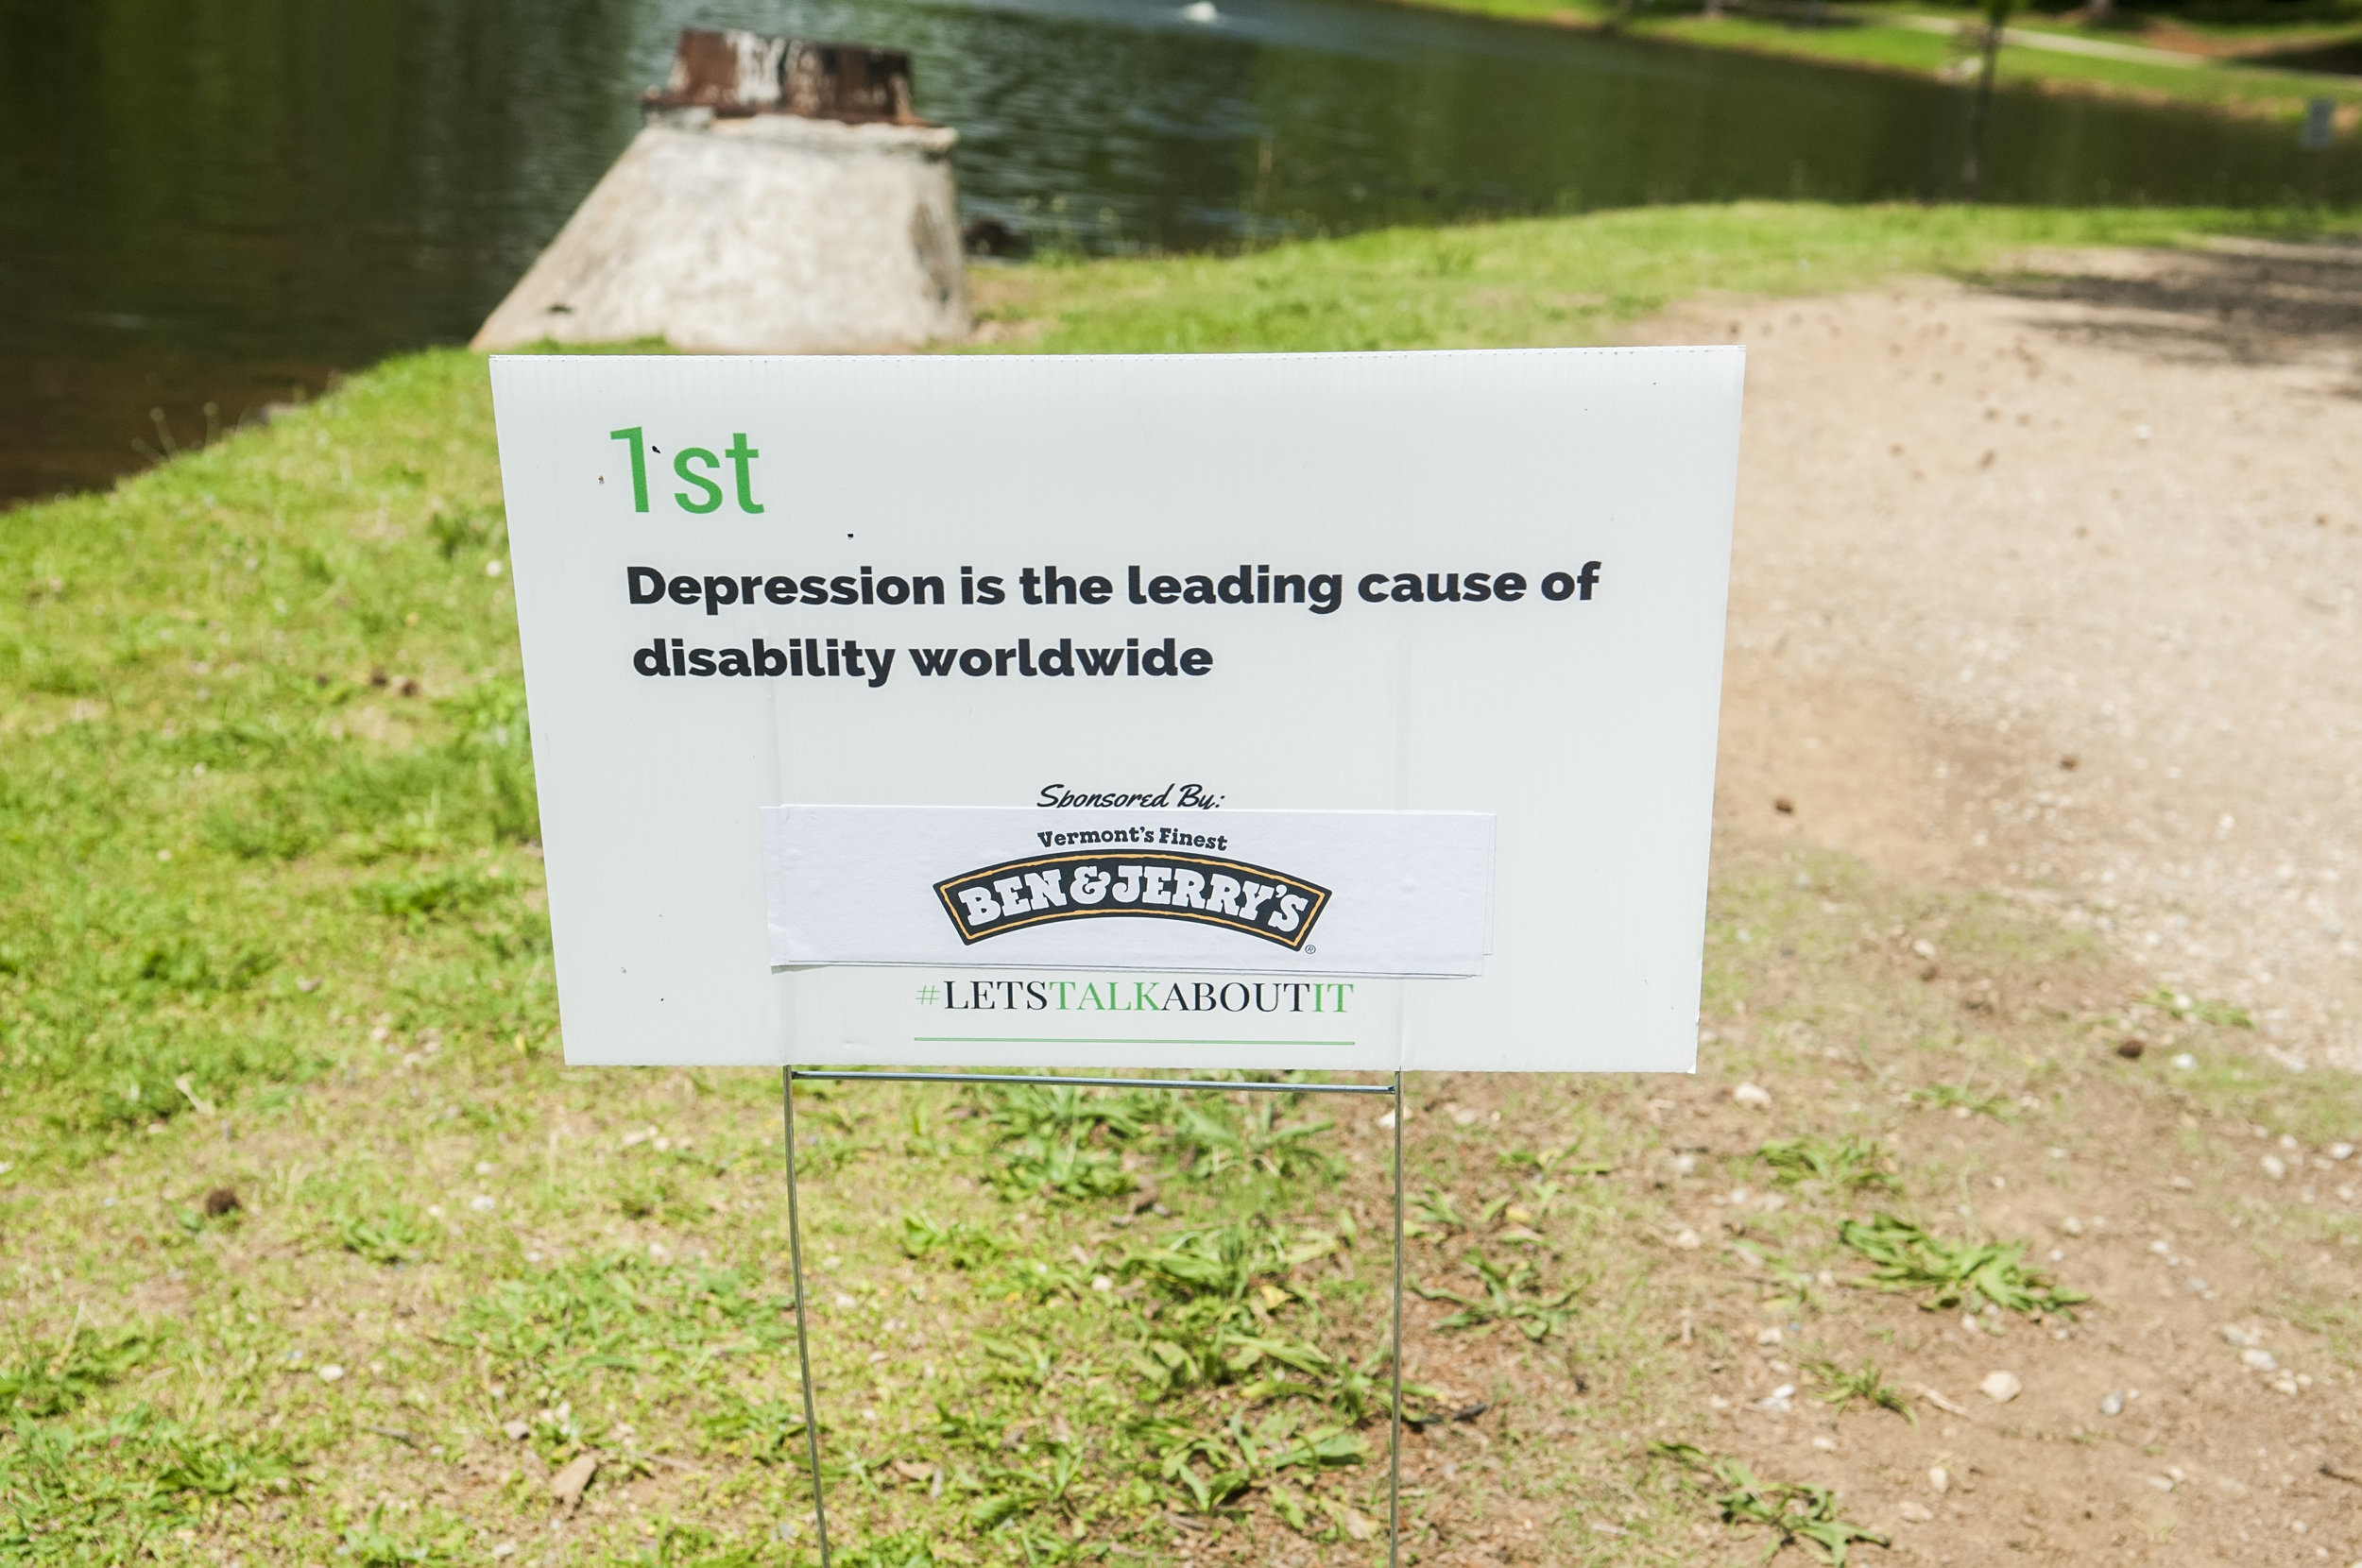 2nd Annual Let's Talk About It Mental Health Awareness Walk @ Park Rd Park 5-20-17 by Jon Strayhorn 174.jpg